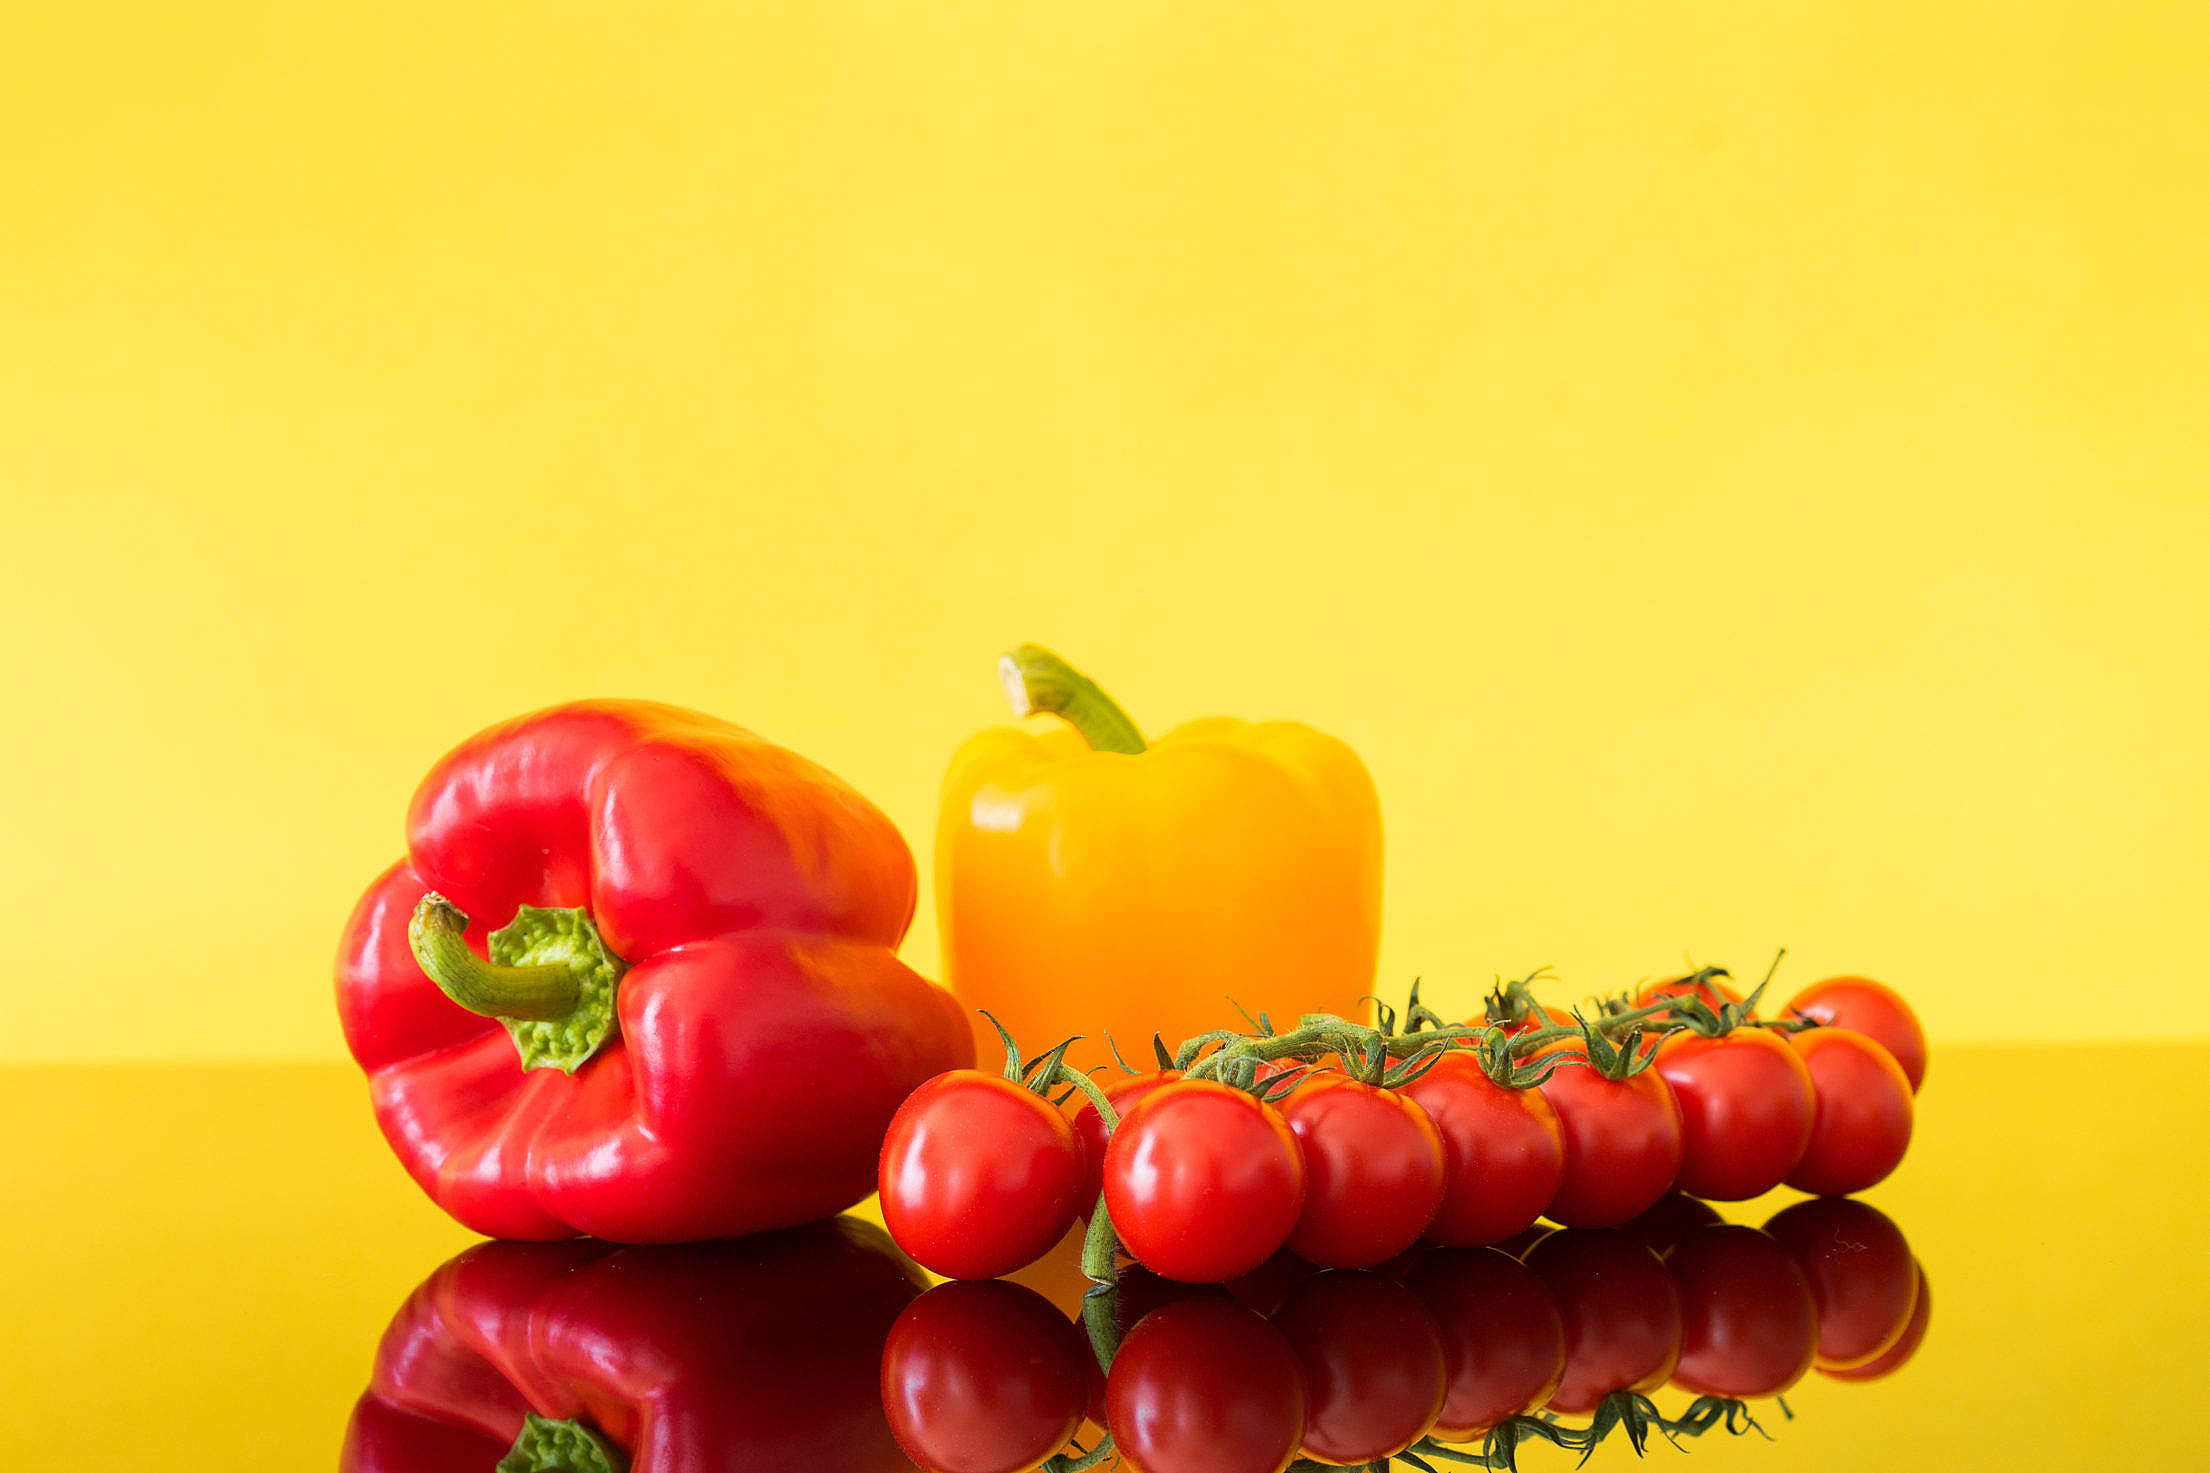 Red and Yellow Paprikas with Tomatoes Still Life Free Stock Photo